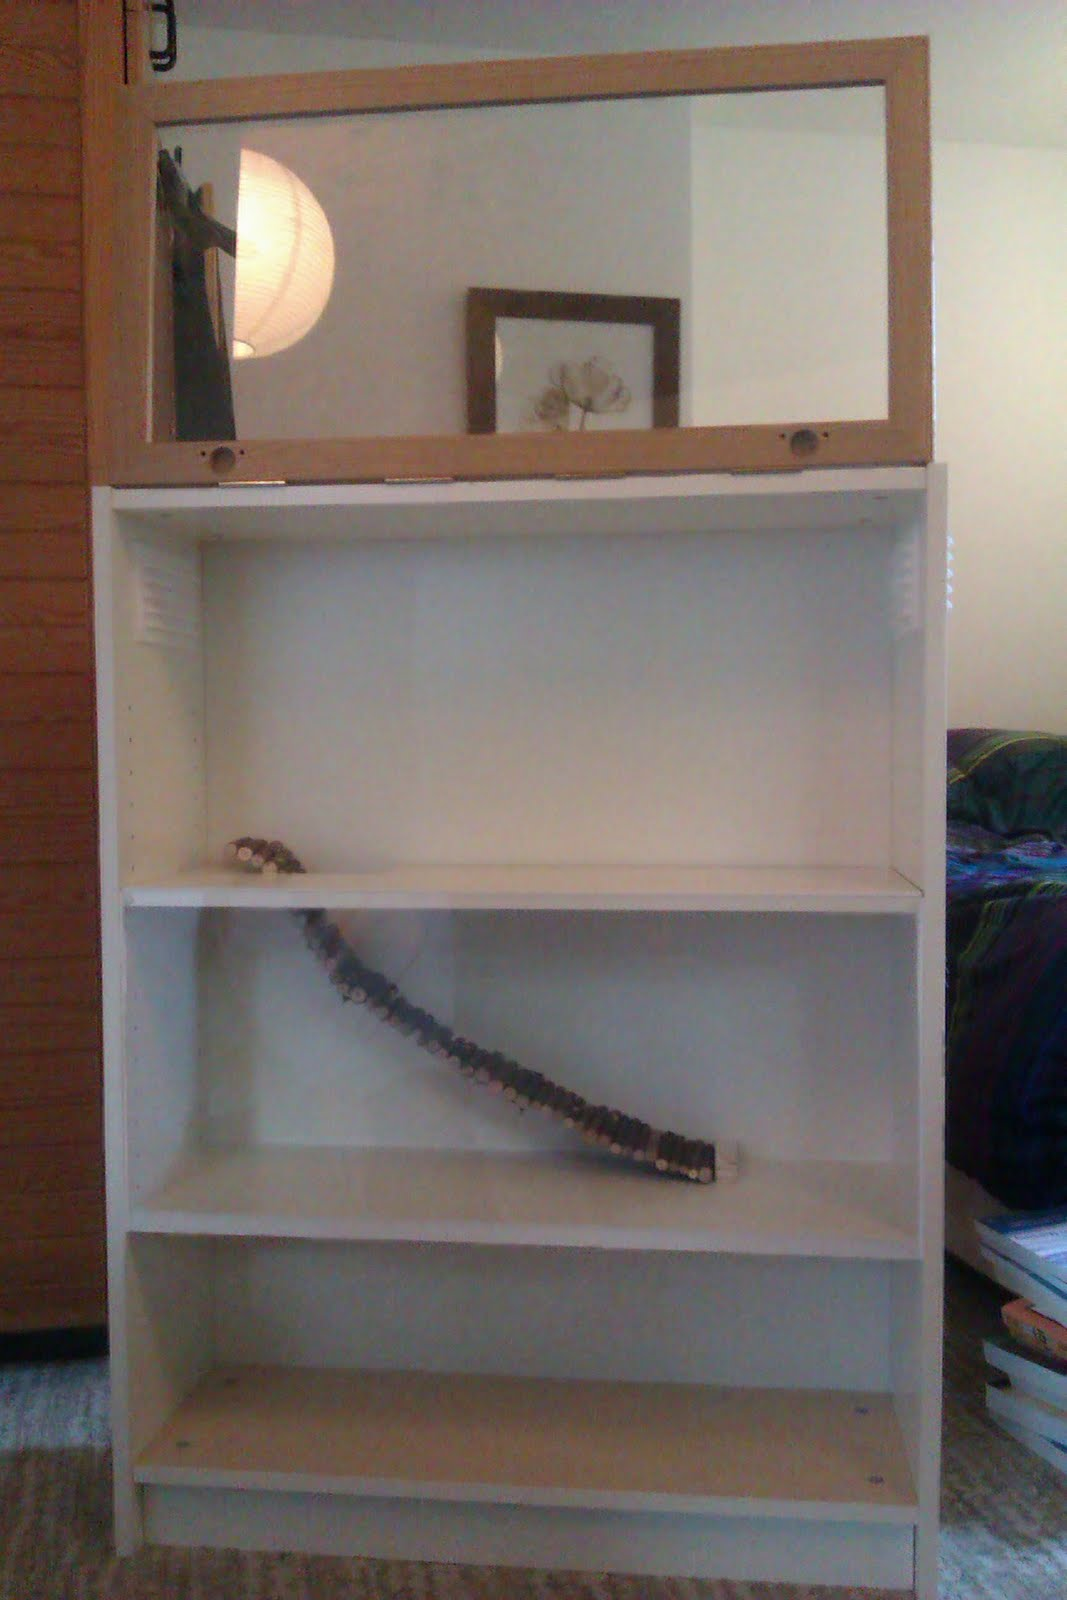 Home make your own two storey hamster apartment for Ikea hamster cage